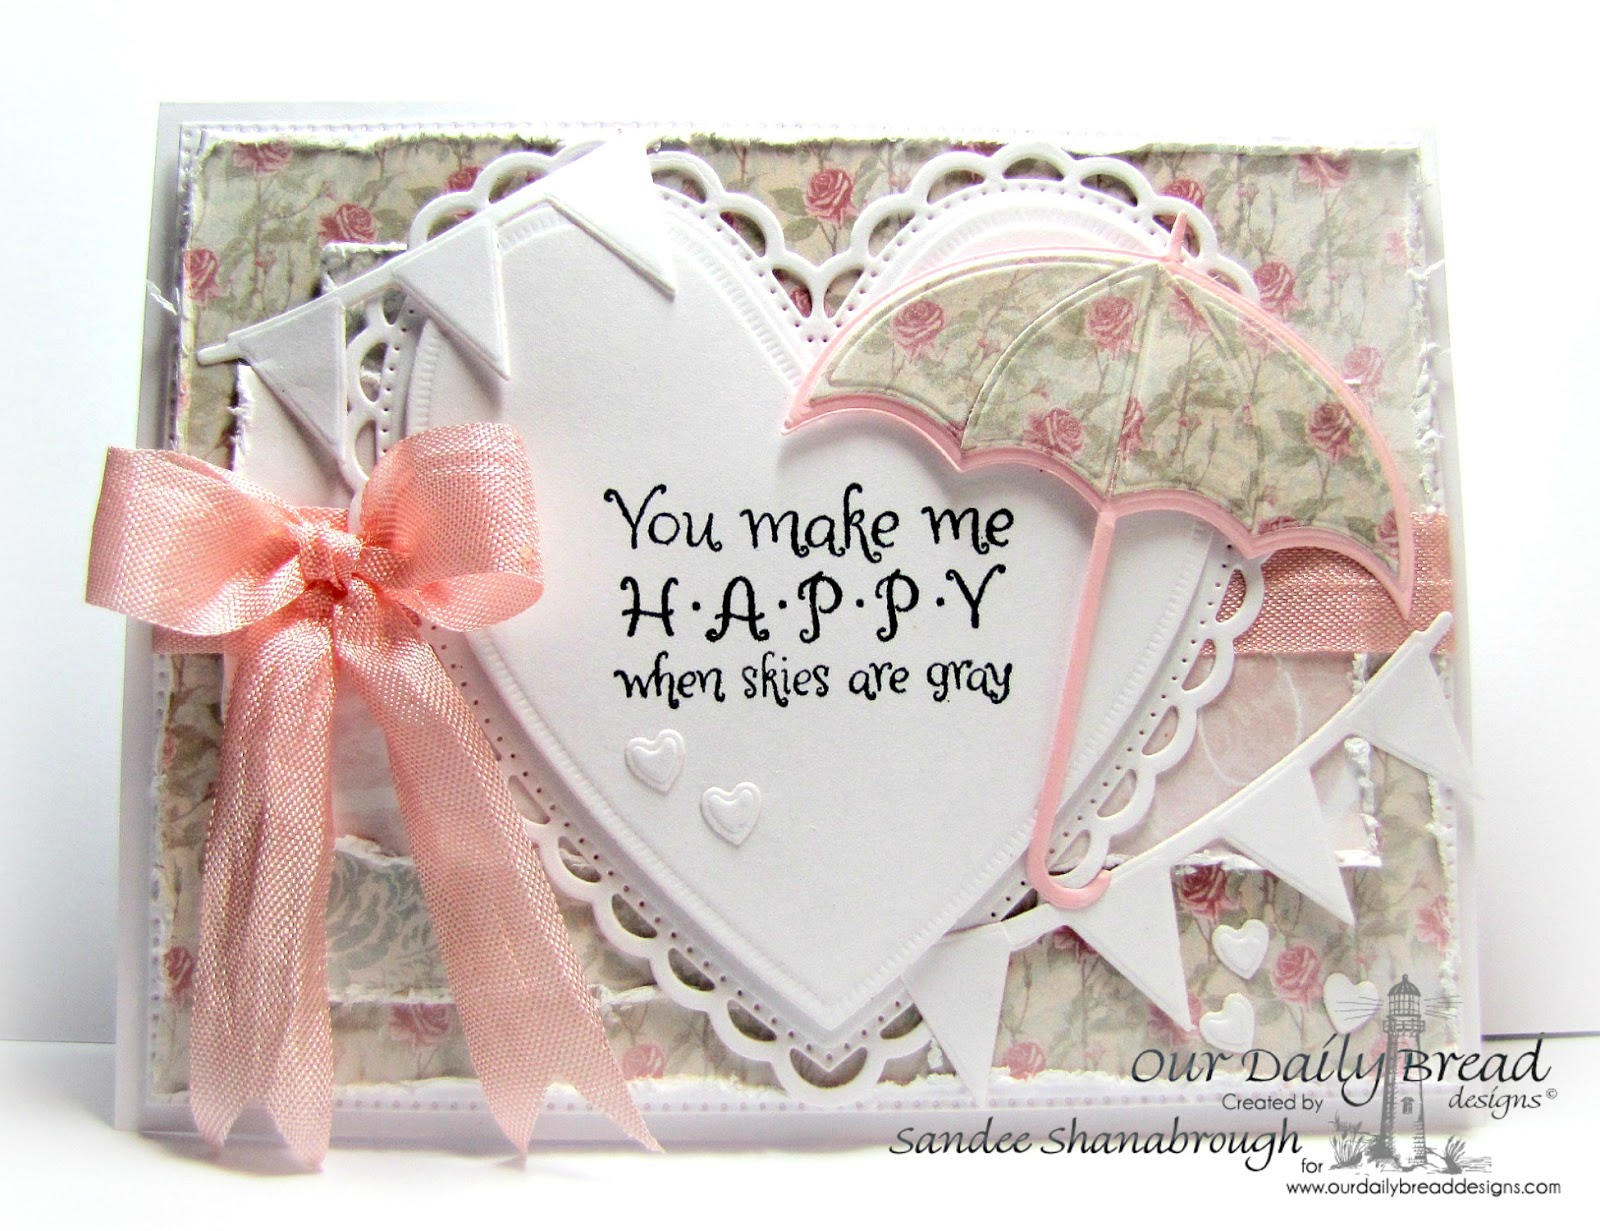 Stamps - Our Daily Bread Designs April Showers, ODBD Custom Dies: Umbrellas, Ornate Hearts, Pennant Row, Flourished Star Pattern, ODBD Shabby Rose Paper Collection